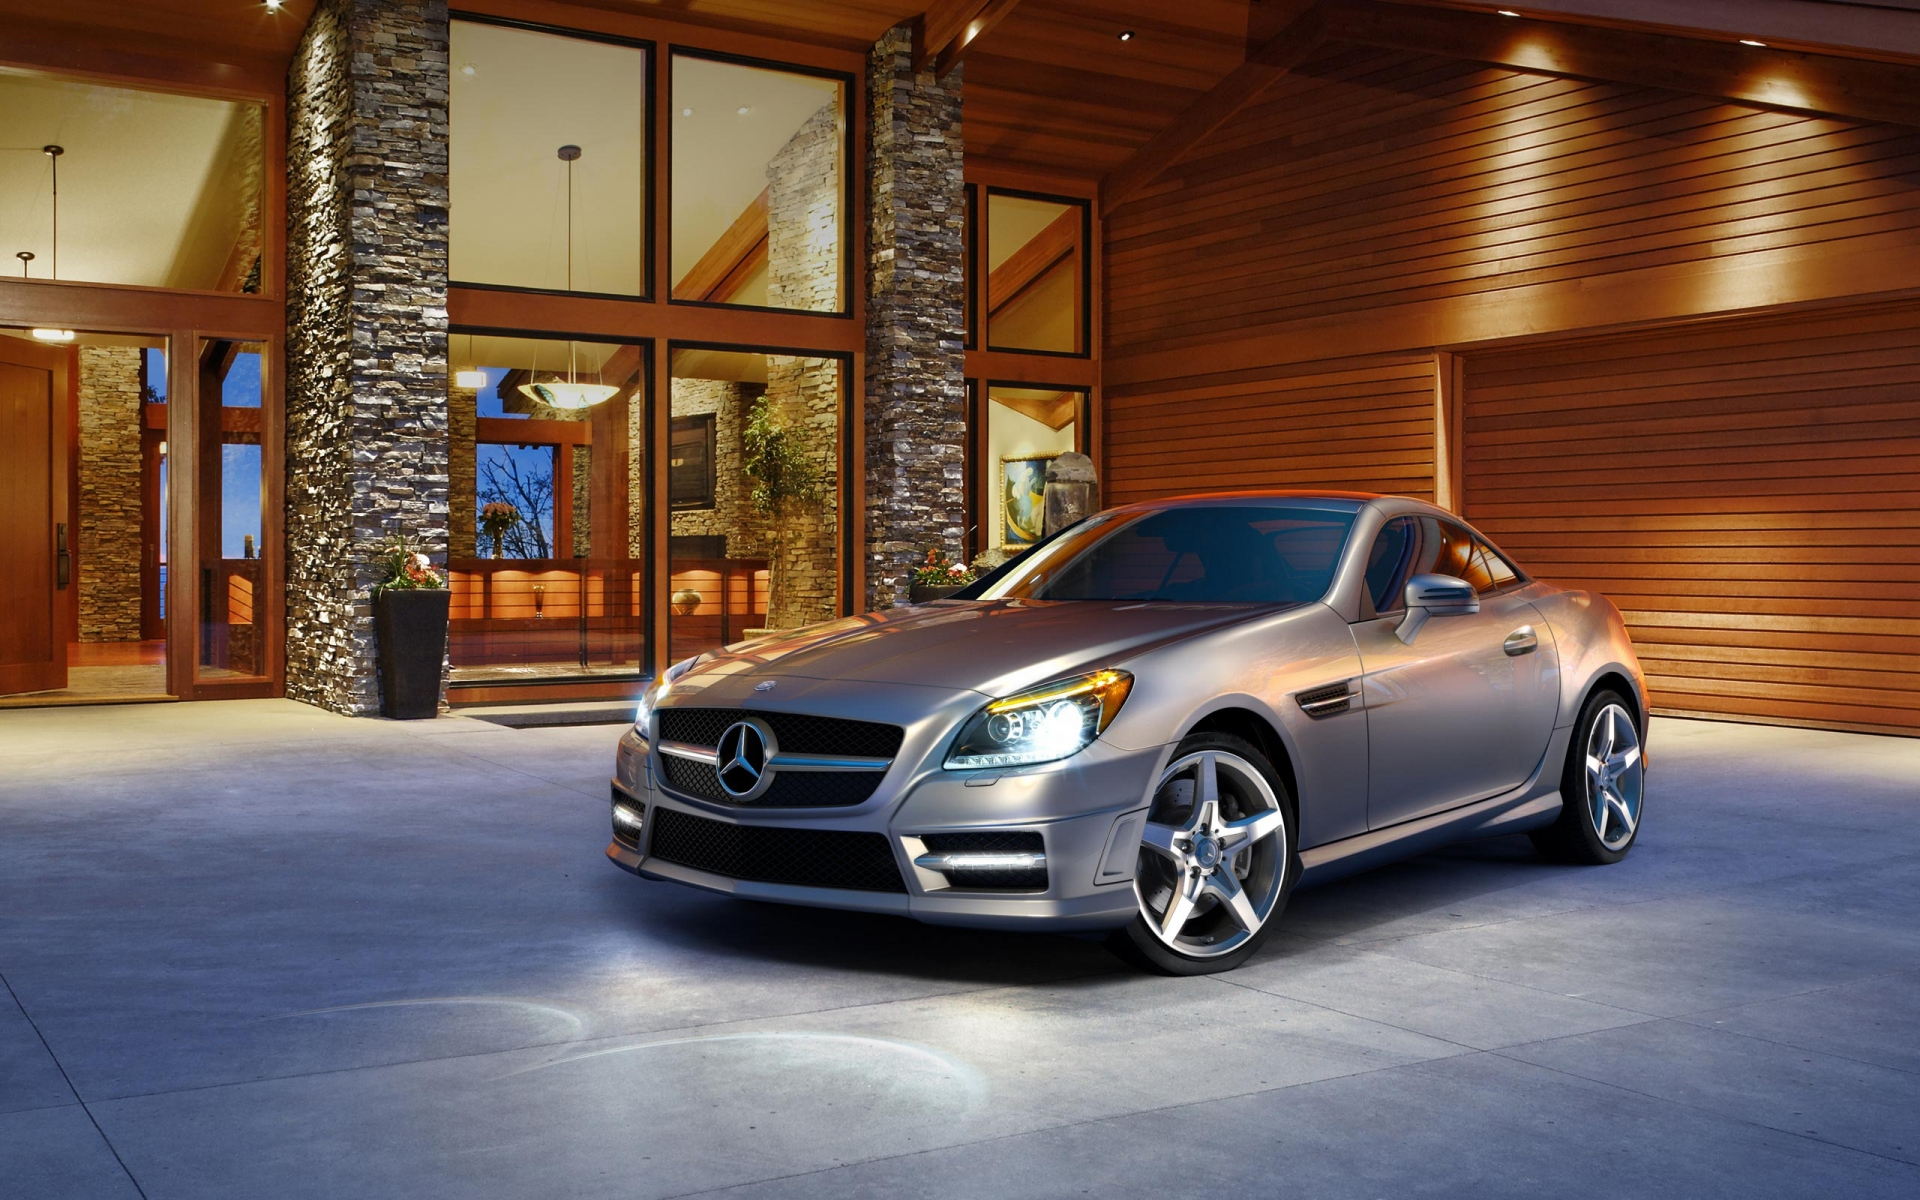 2012 SLK Class Roadster for 1920 x 1200 widescreen resolution